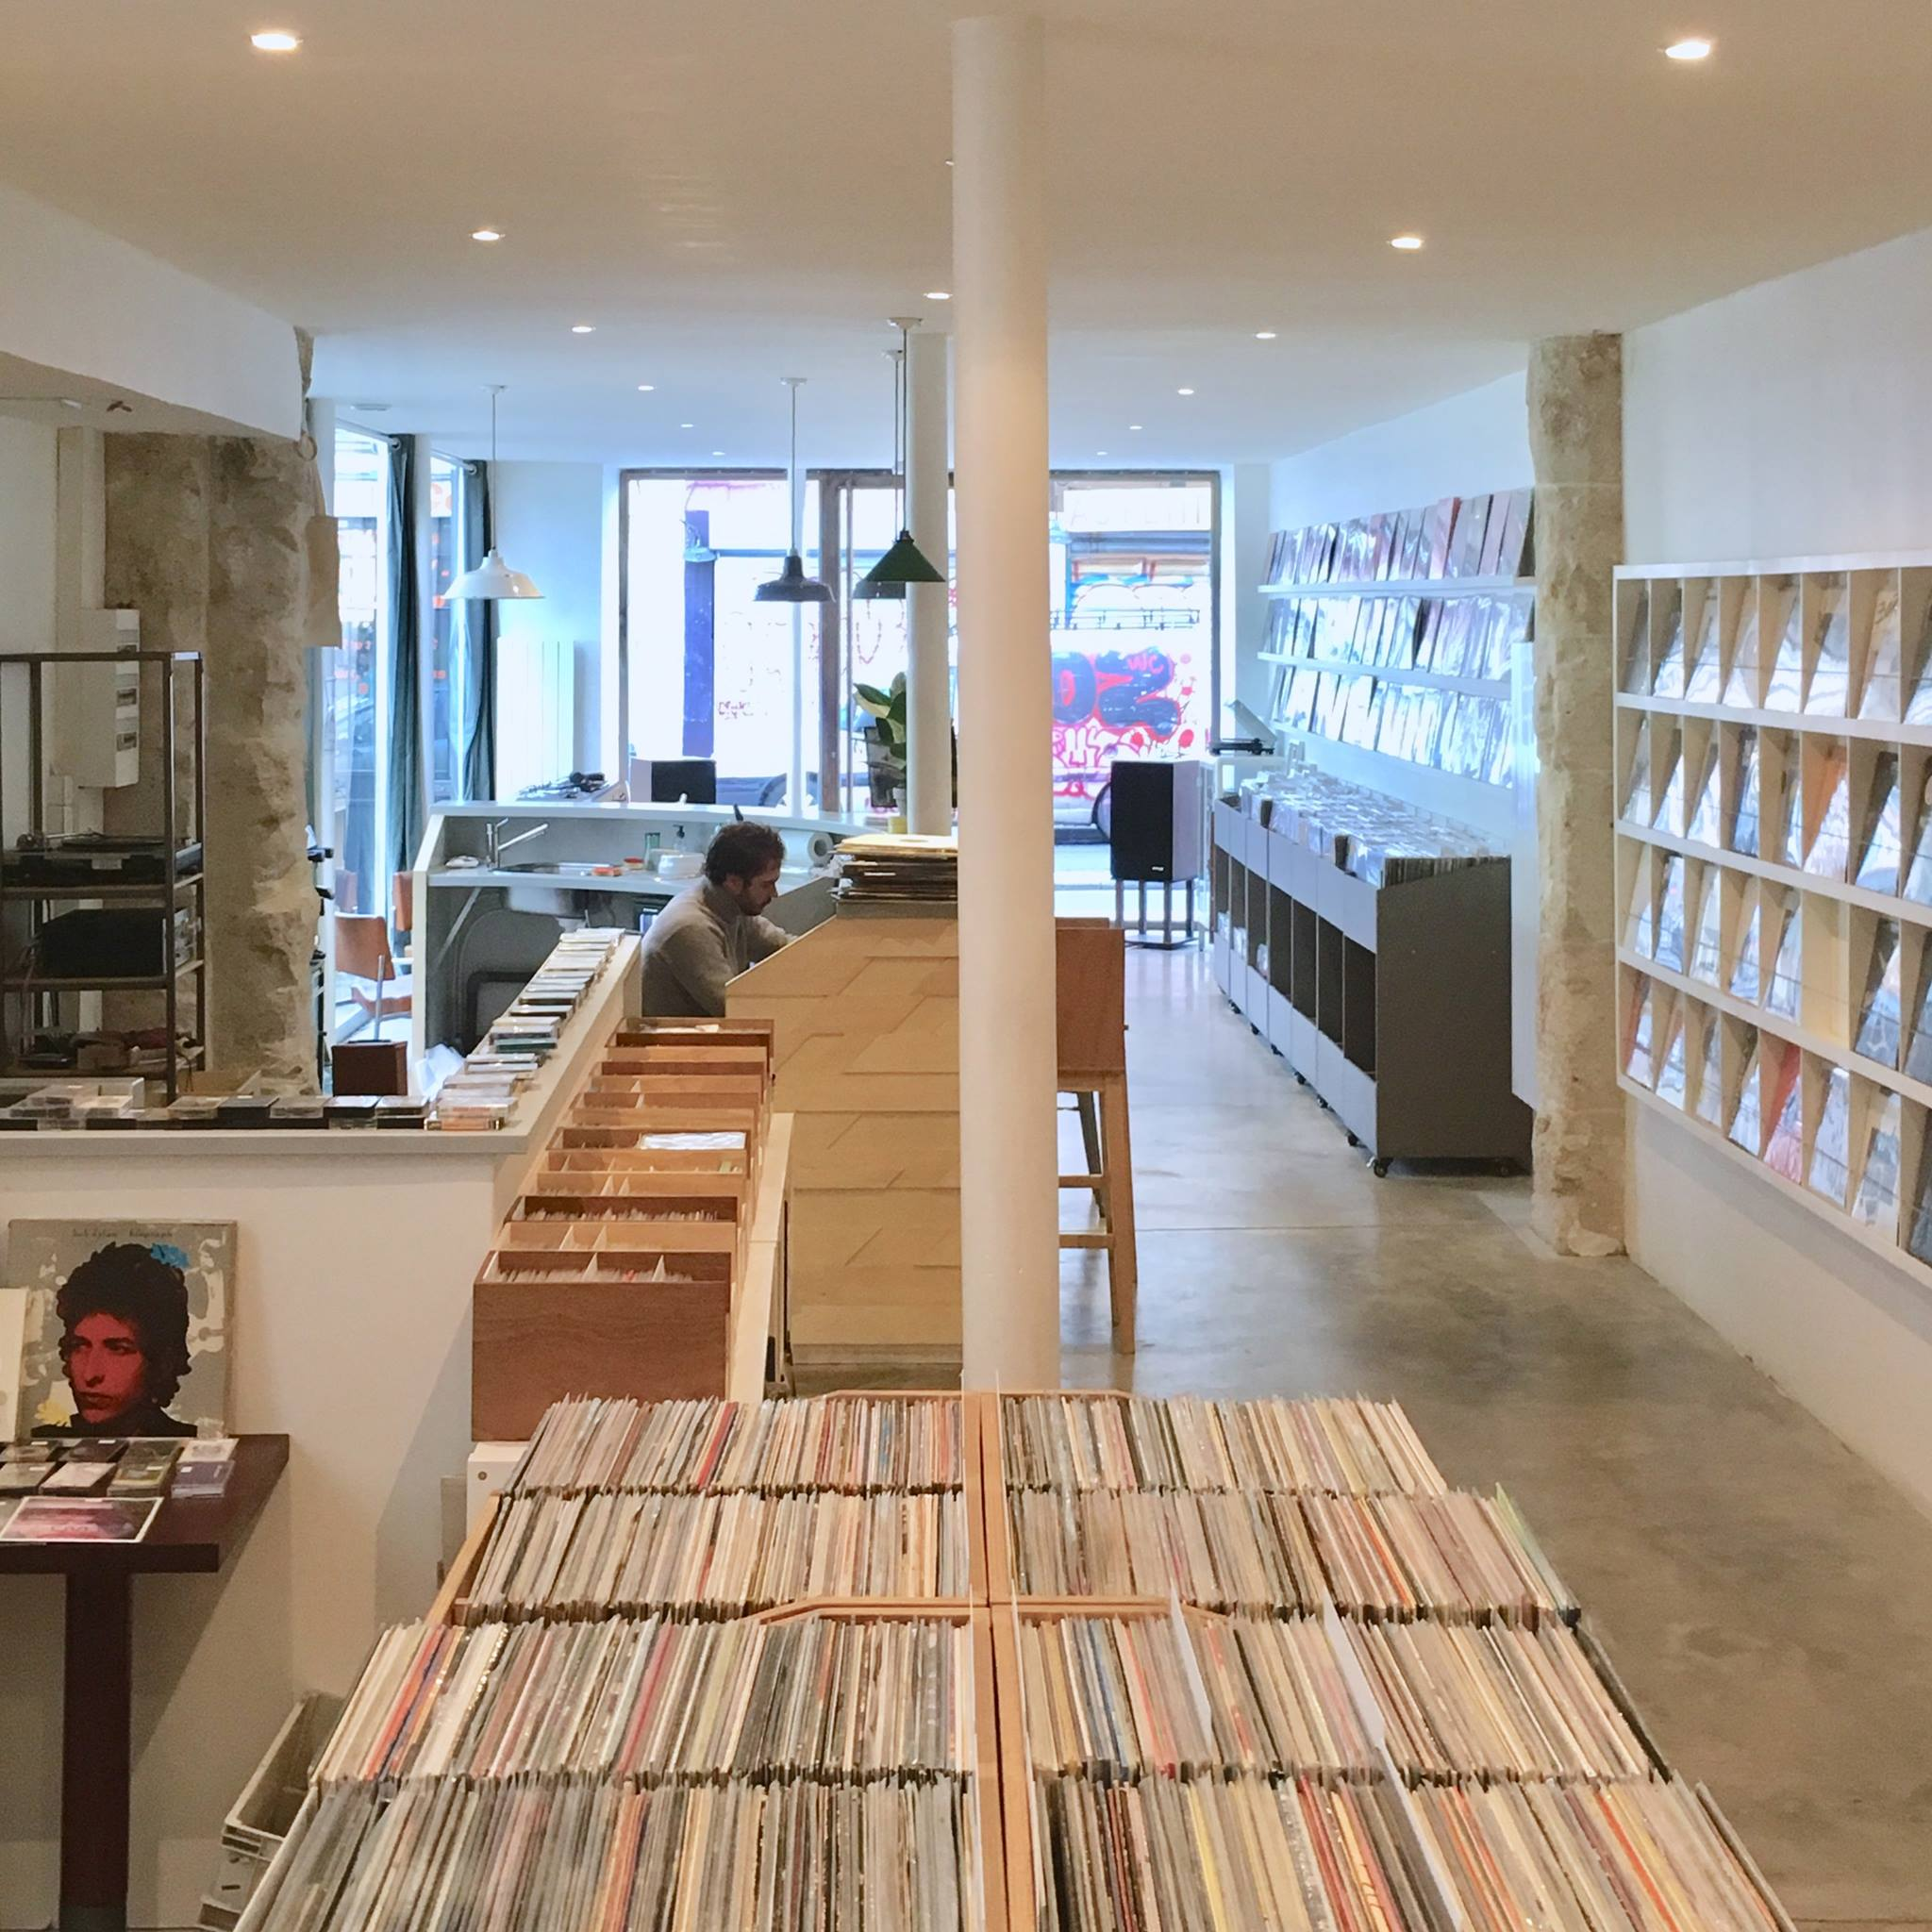 Bigwax Records, Paris